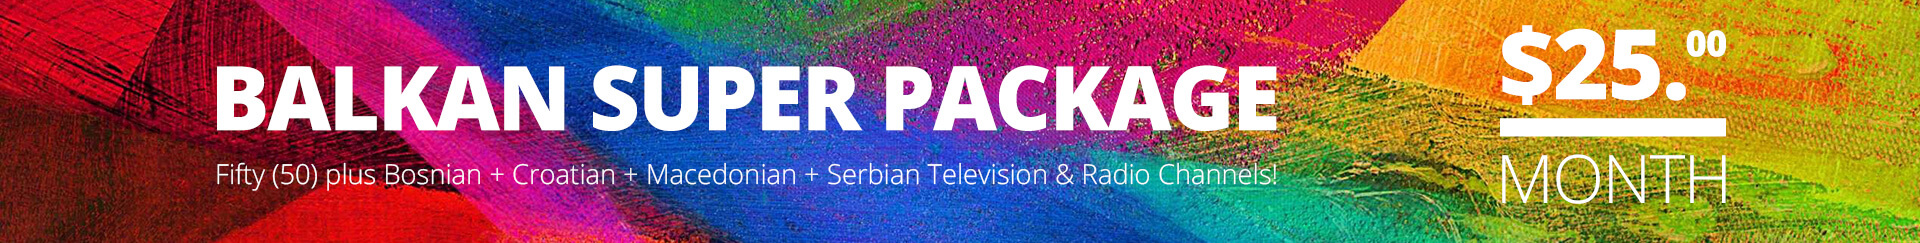 Balkan Super Package TV Banner